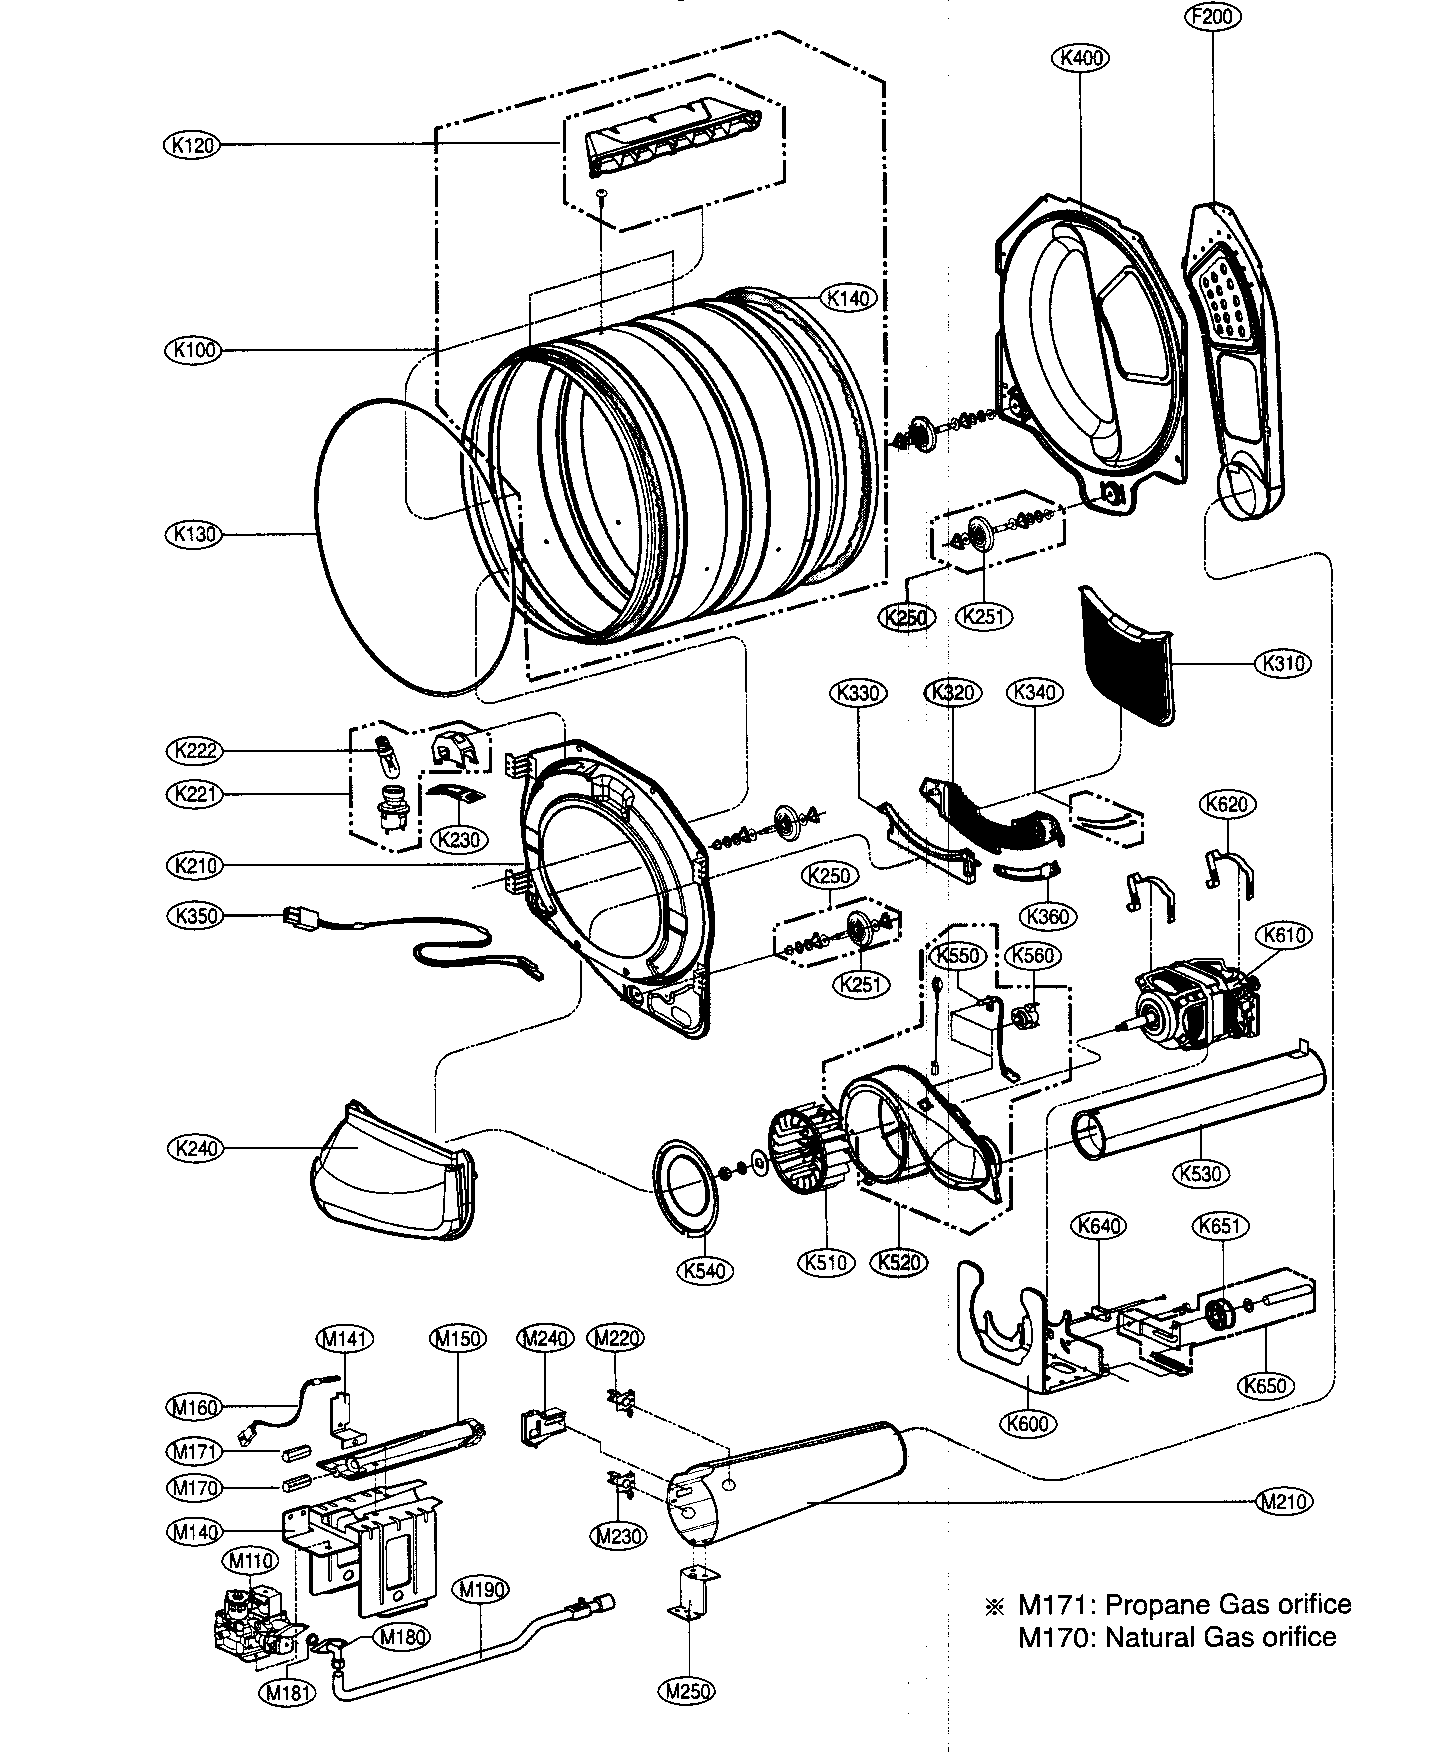 drum parts diagram pictures to pin on pinterest